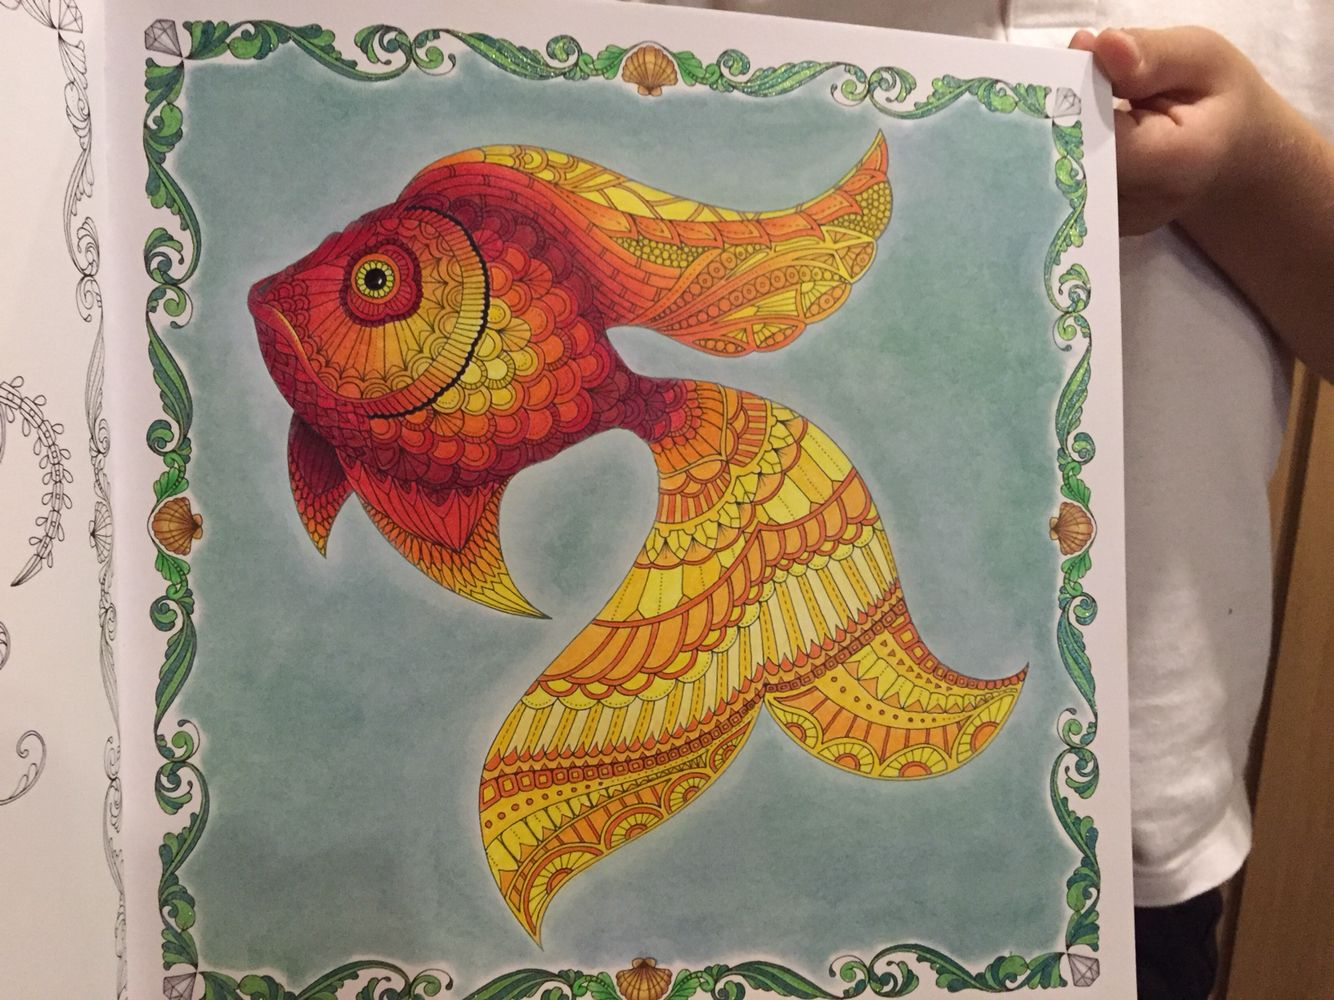 Zen ocean colouring book - Find This Pin And More On Color Book Lost Ocean Johanna Basford